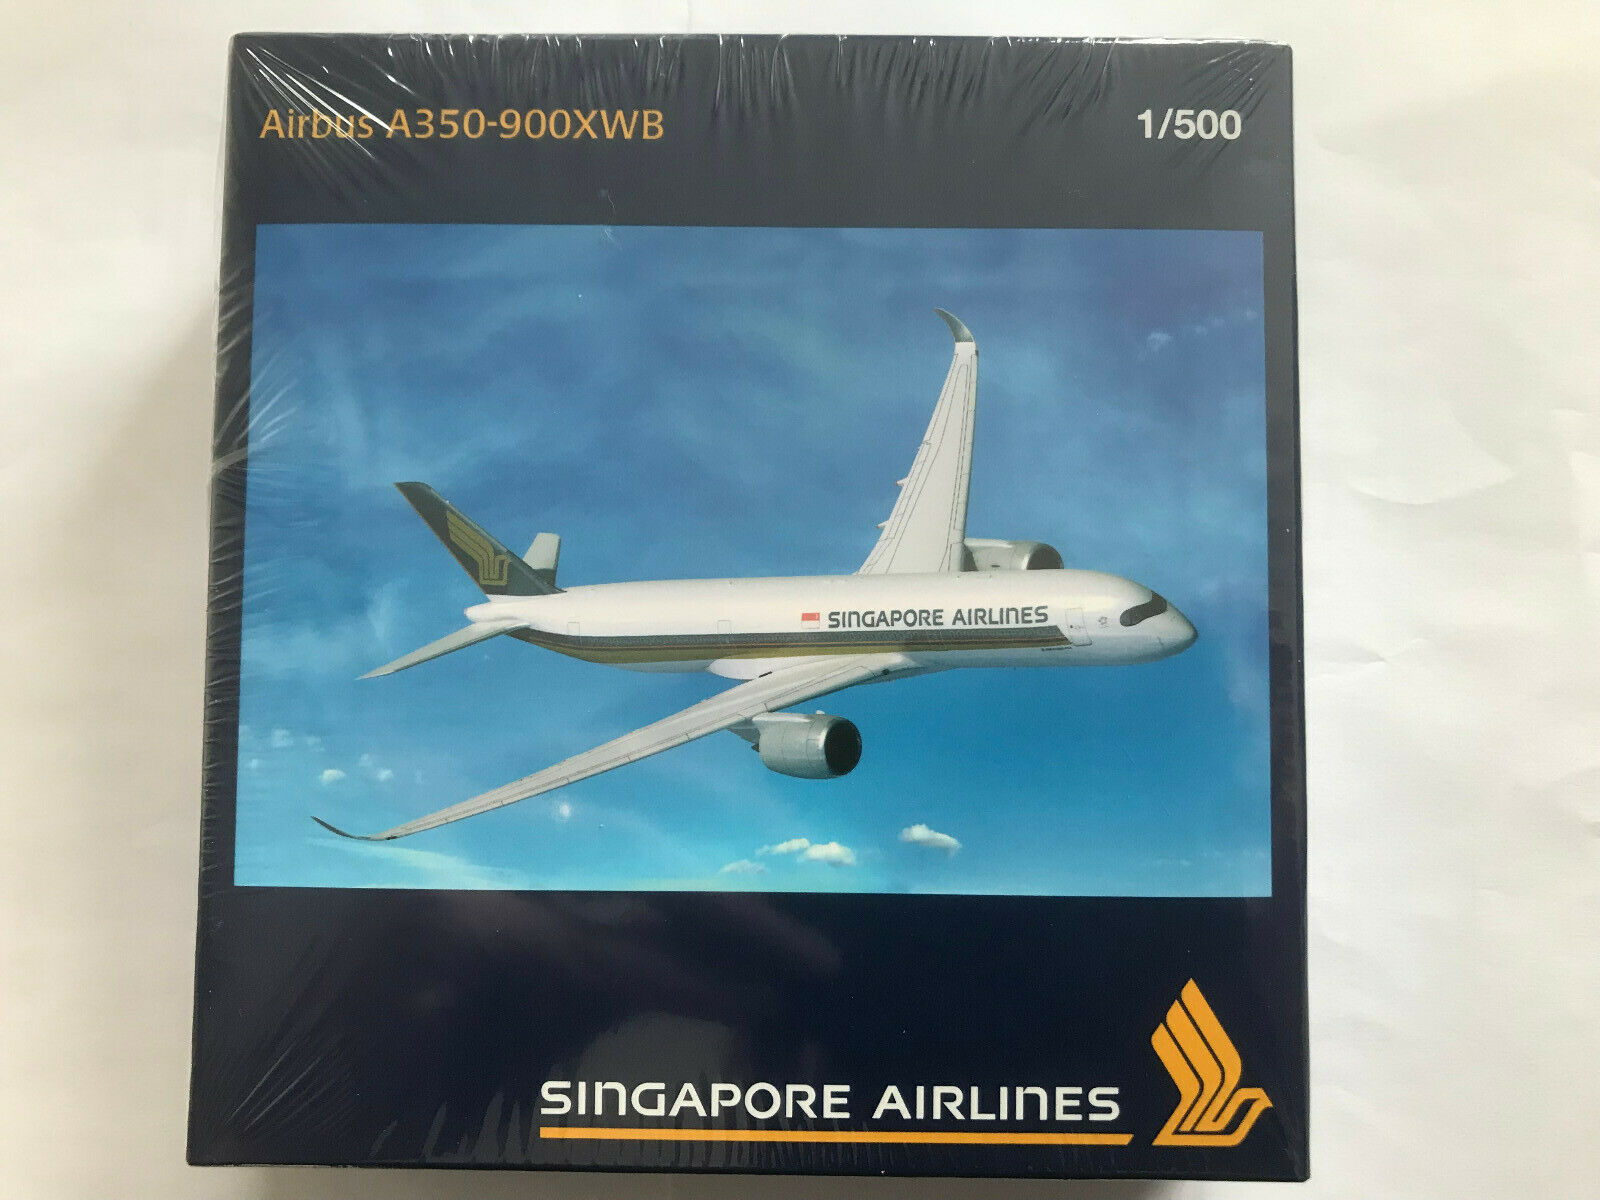 Rare Herpa Wings 1 500 - SIA-Singapore Airlines-airbus a350-900xwb - 524858